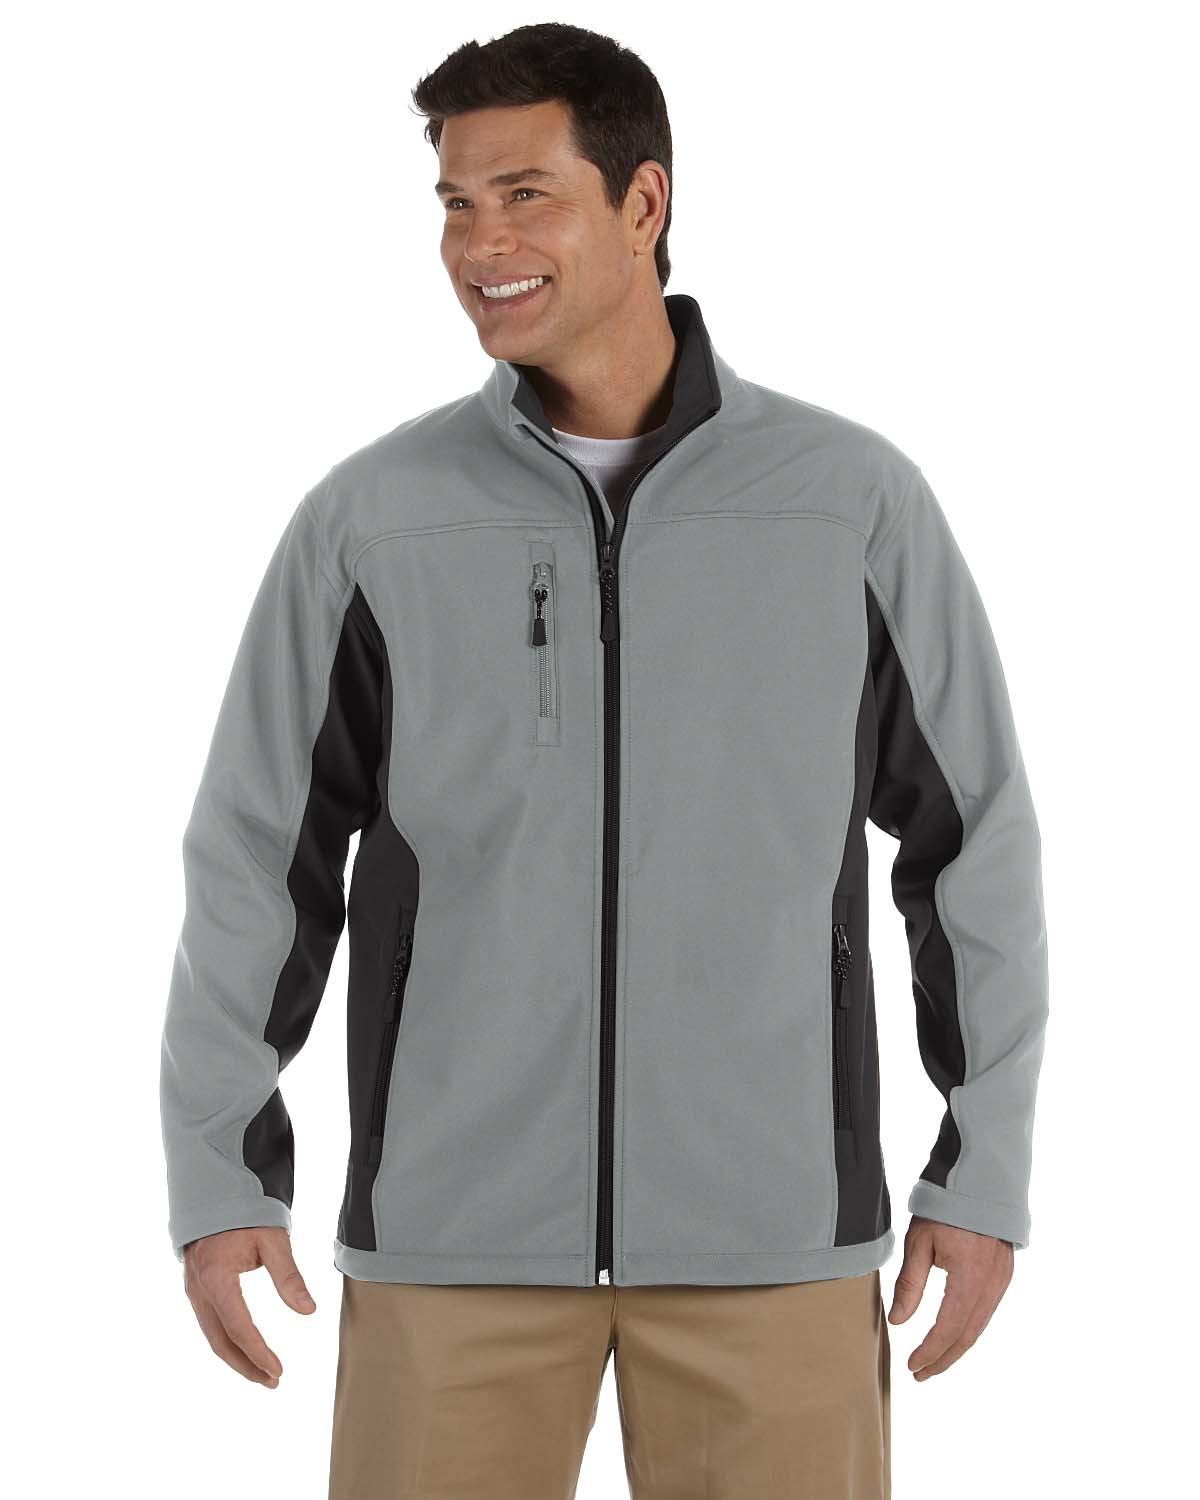 Men's Soft Shell Colorblock Jacket